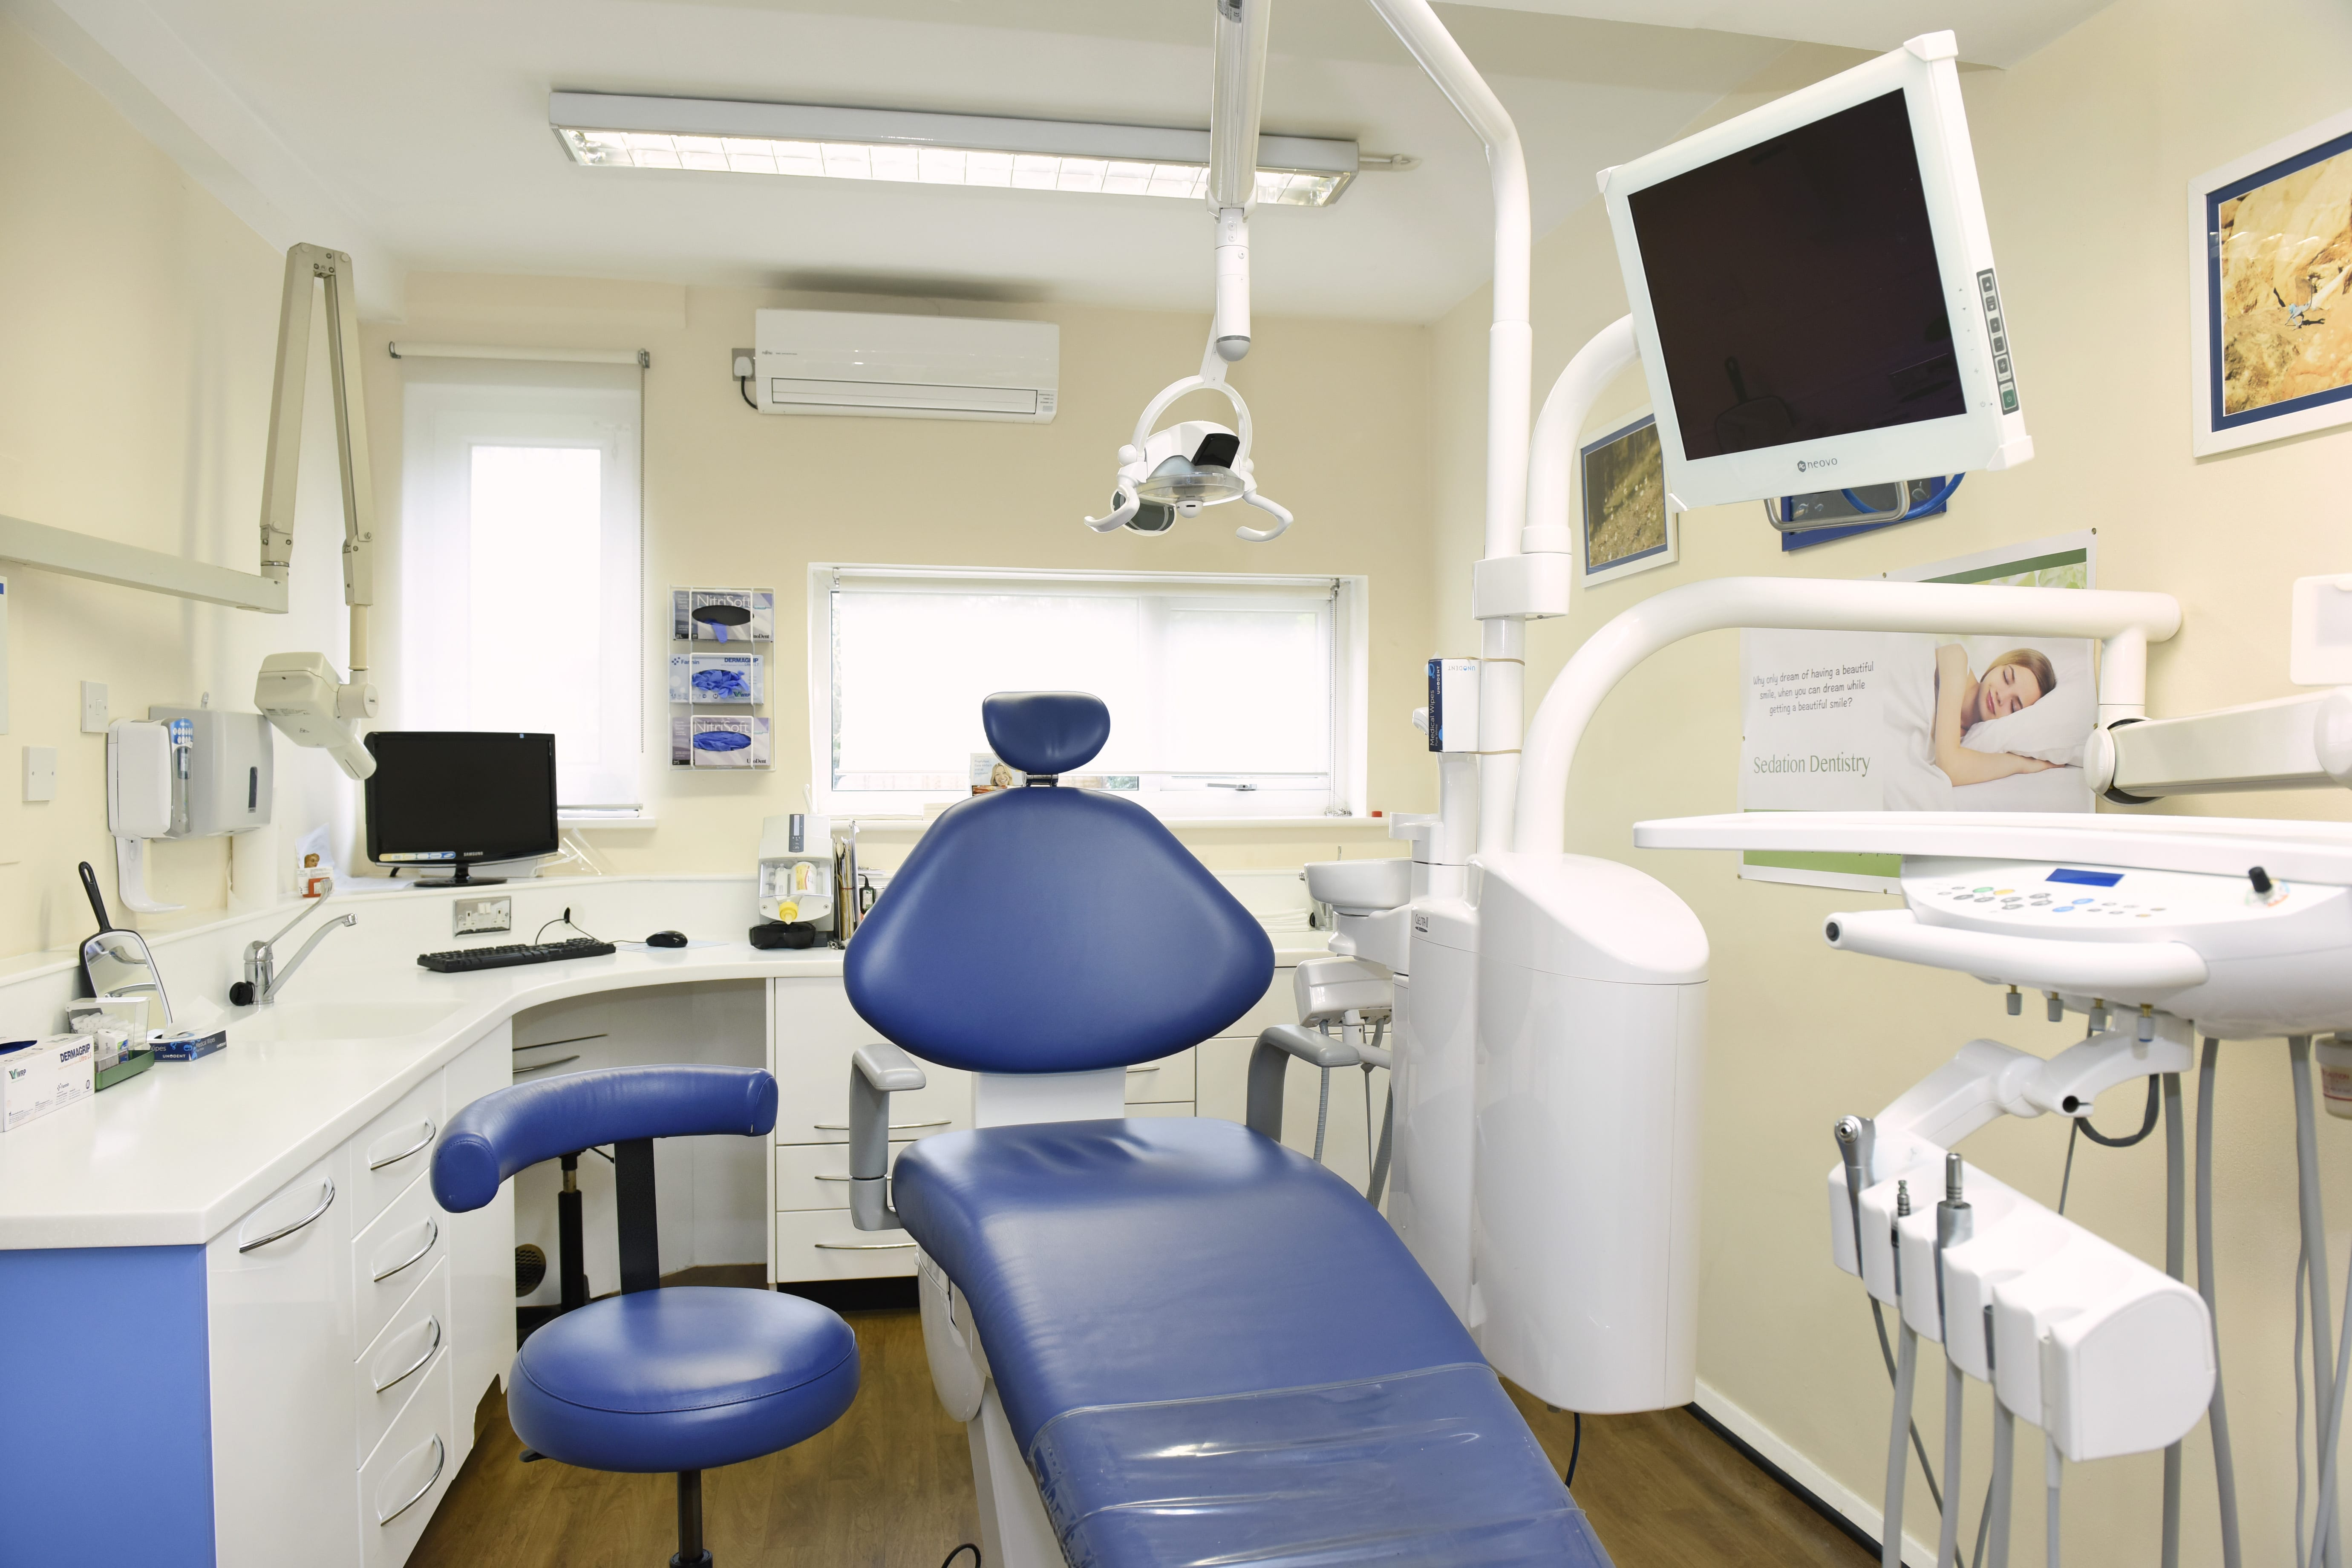 cosmetic surgery center photo - 1